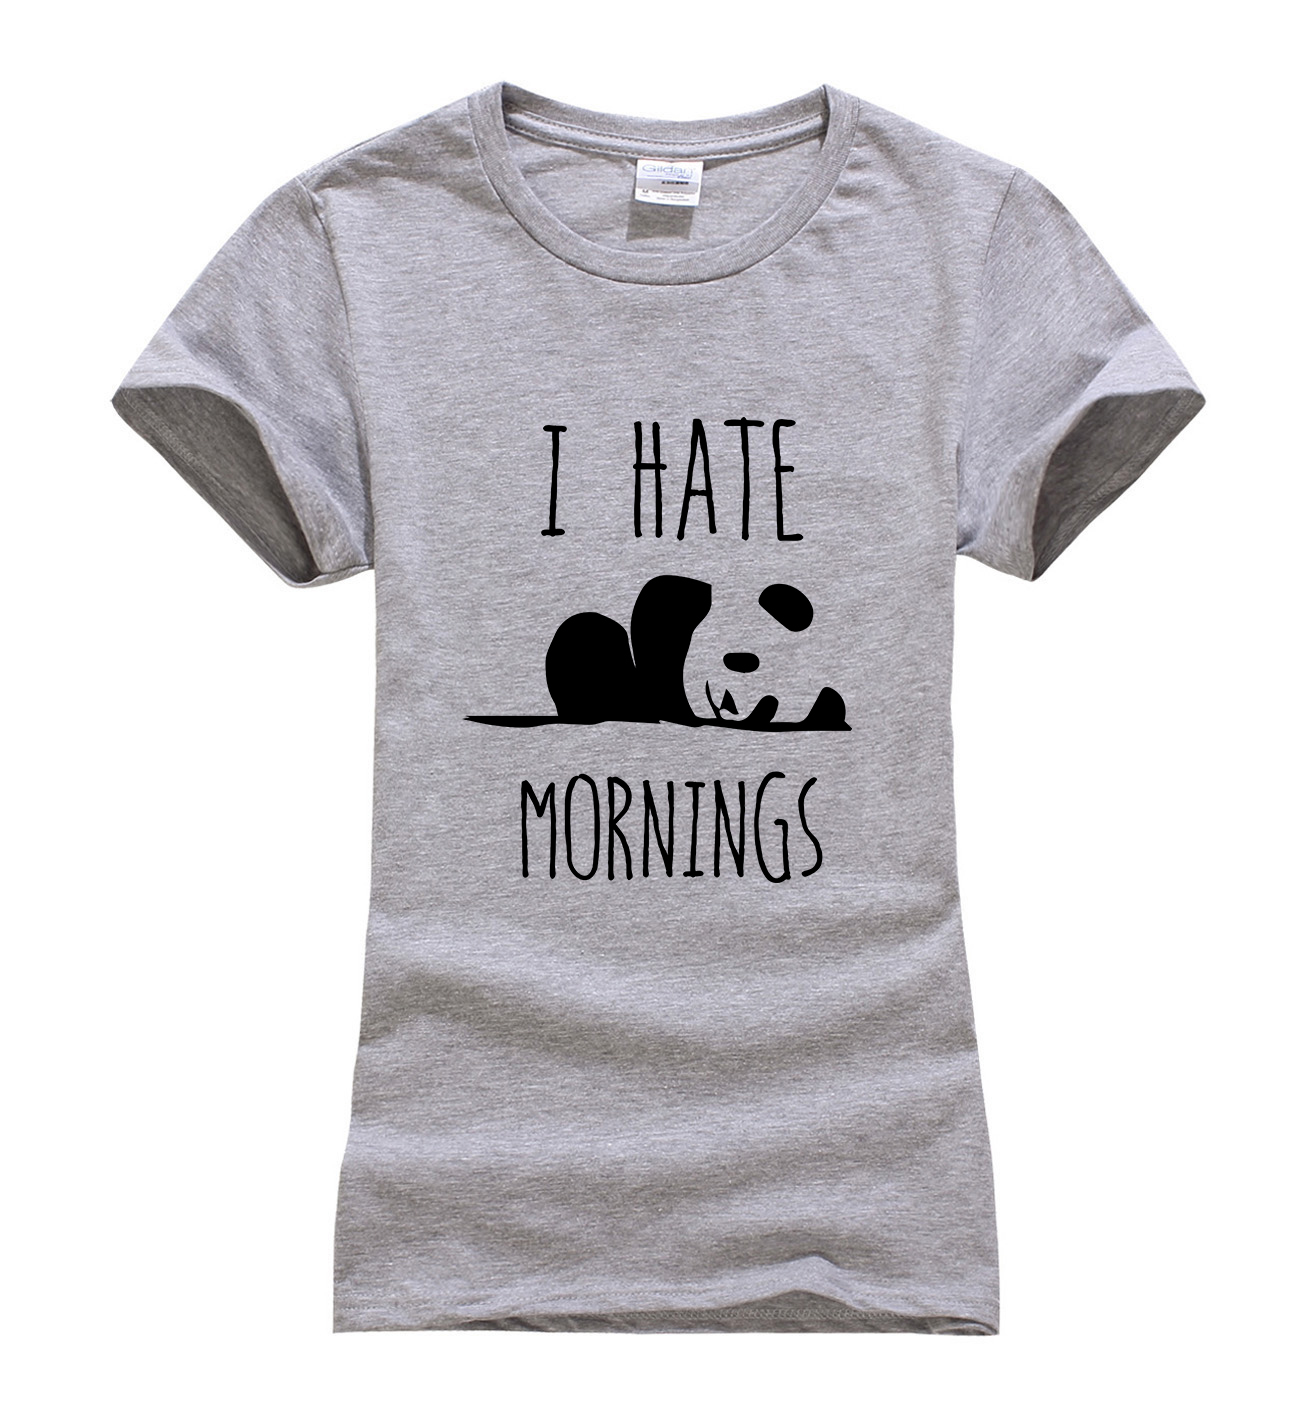 2017 summer i hate mornings cute panda print women t shirt for Cheap t shirt printing no minimum